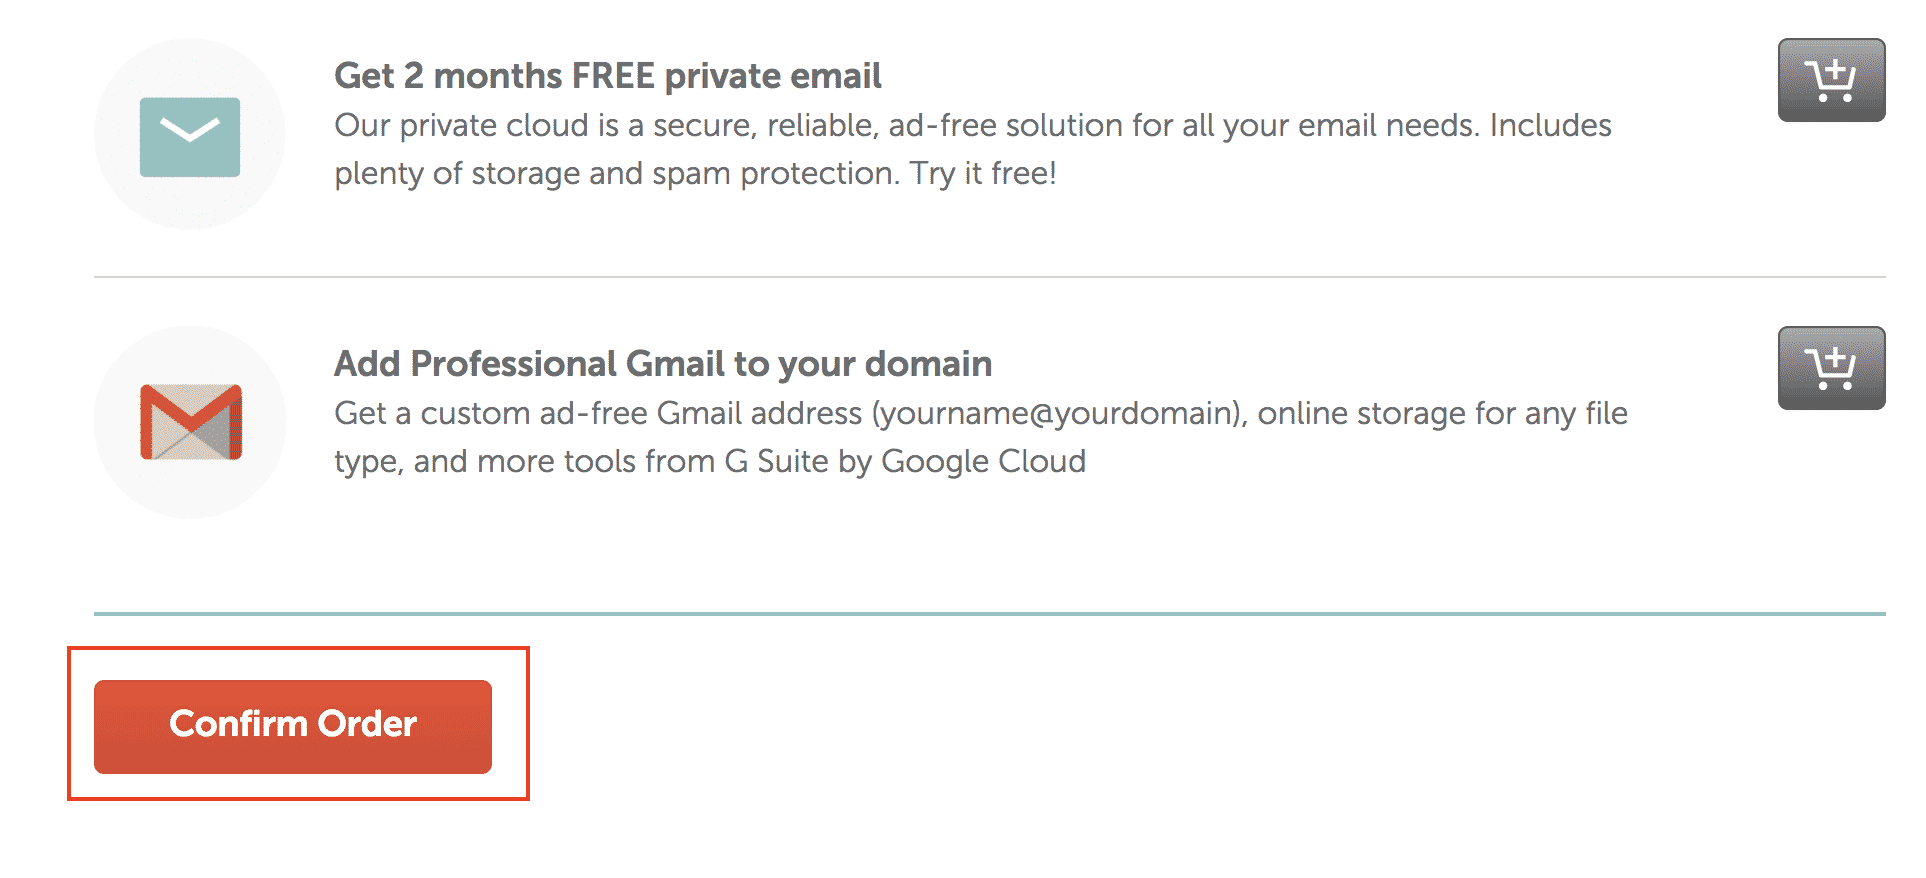 Buying a domain name